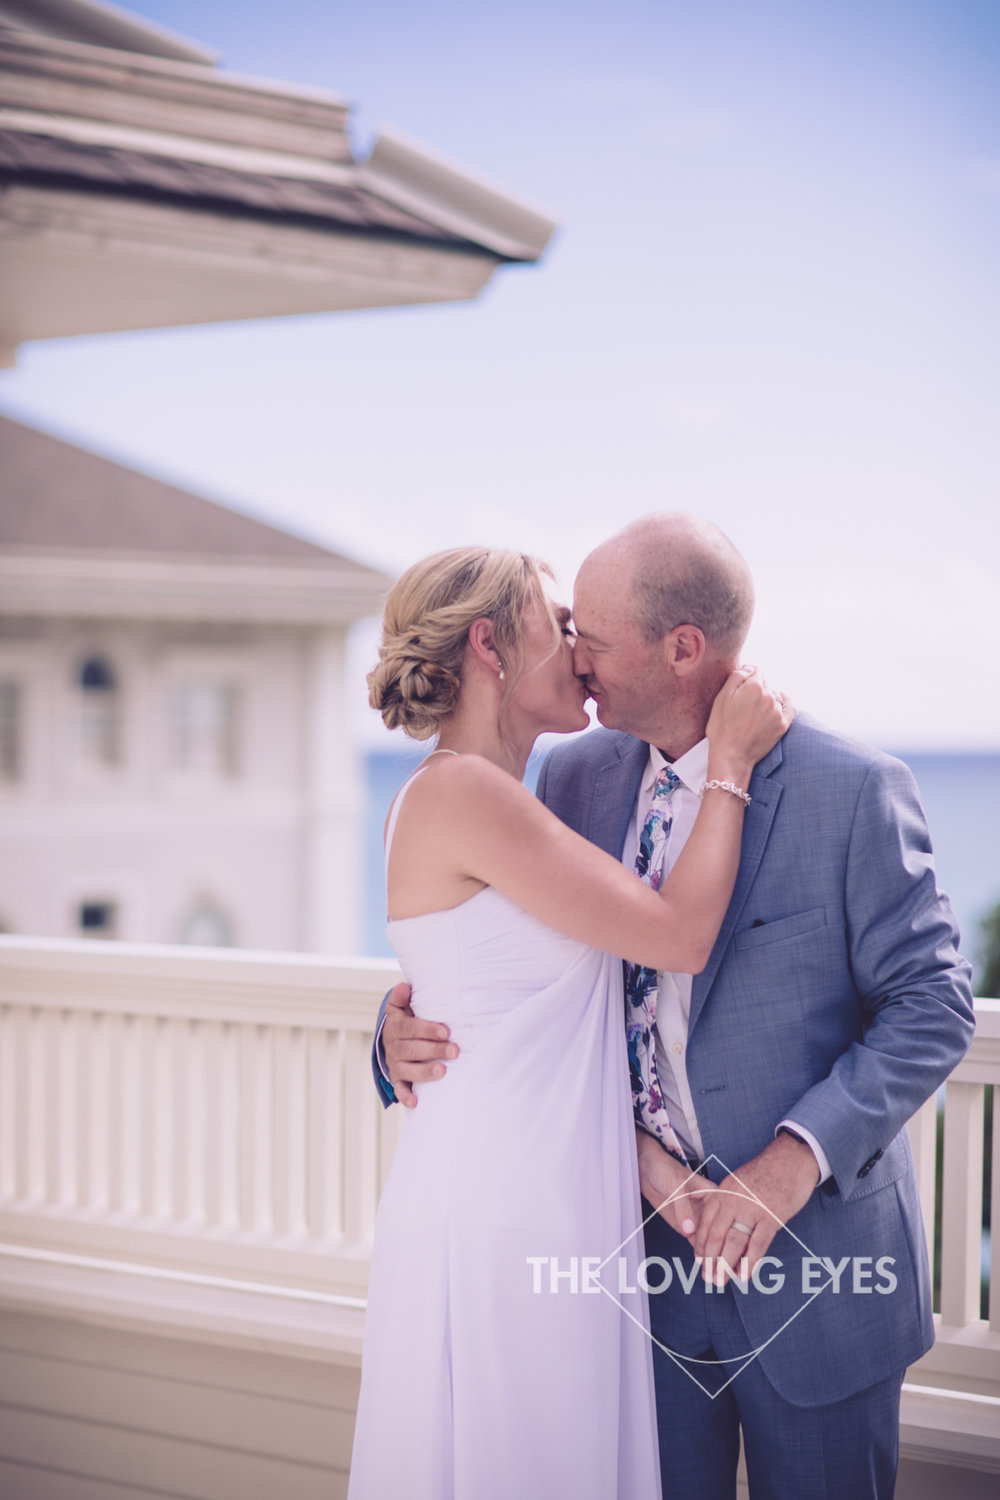 Roof top elopement wedding ceremony at the Moana Surfrider in Waikiki